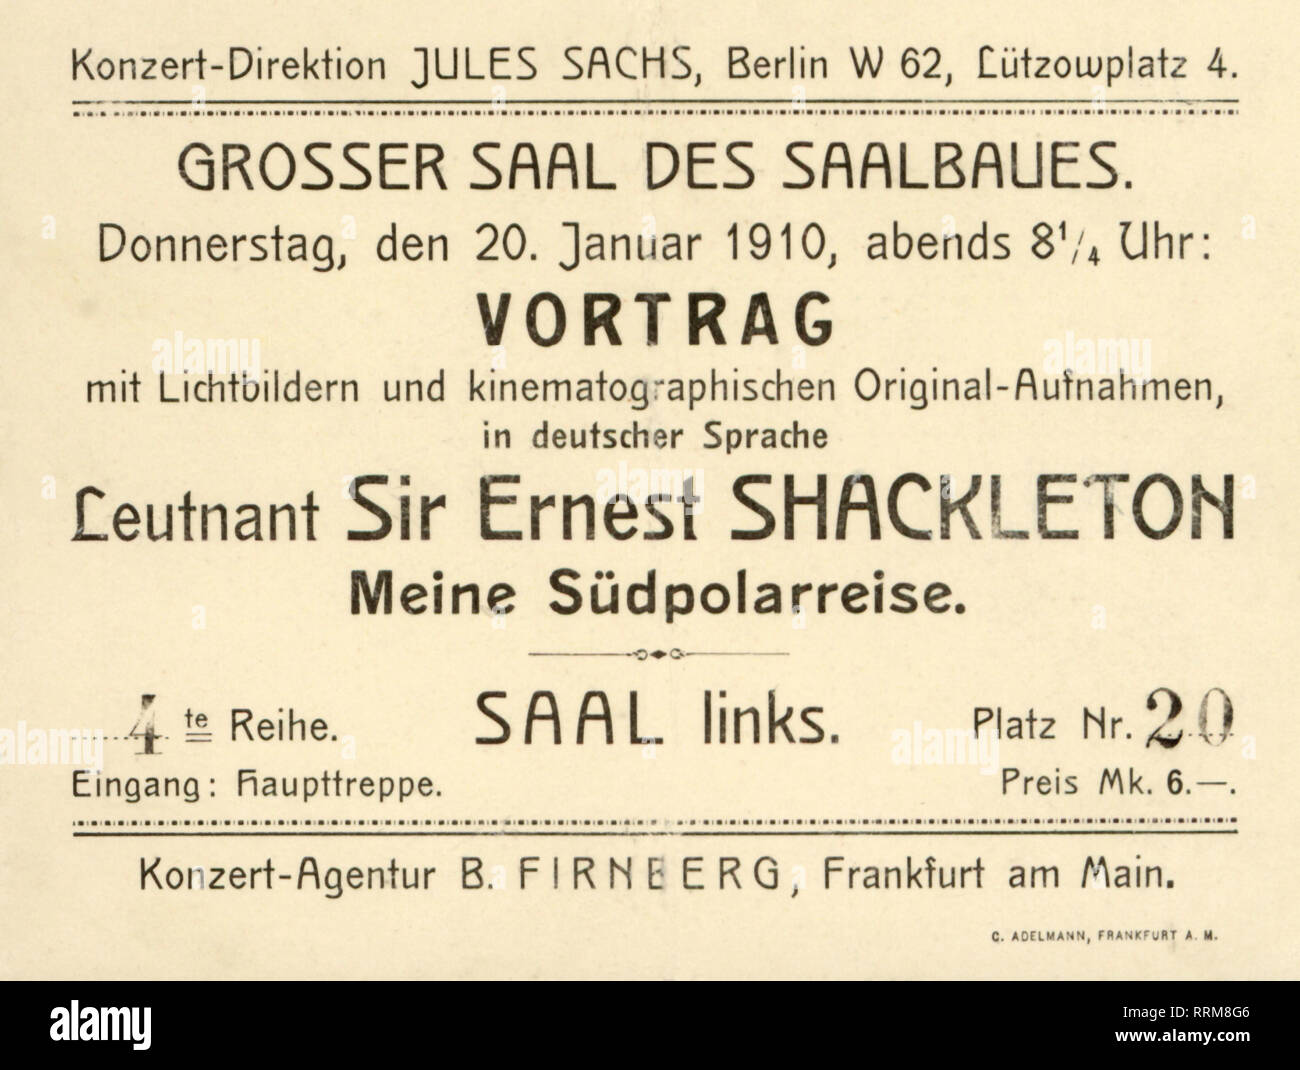 Shackleton, Ernest, 15.2.1874 - 5.1.1922, British arctic explorer, admission ticket for a lecture about his Antarctic expedition, Berlin, Germany, 20.1.1910, Additional-Rights-Clearance-Info-Not-Available - Stock Image